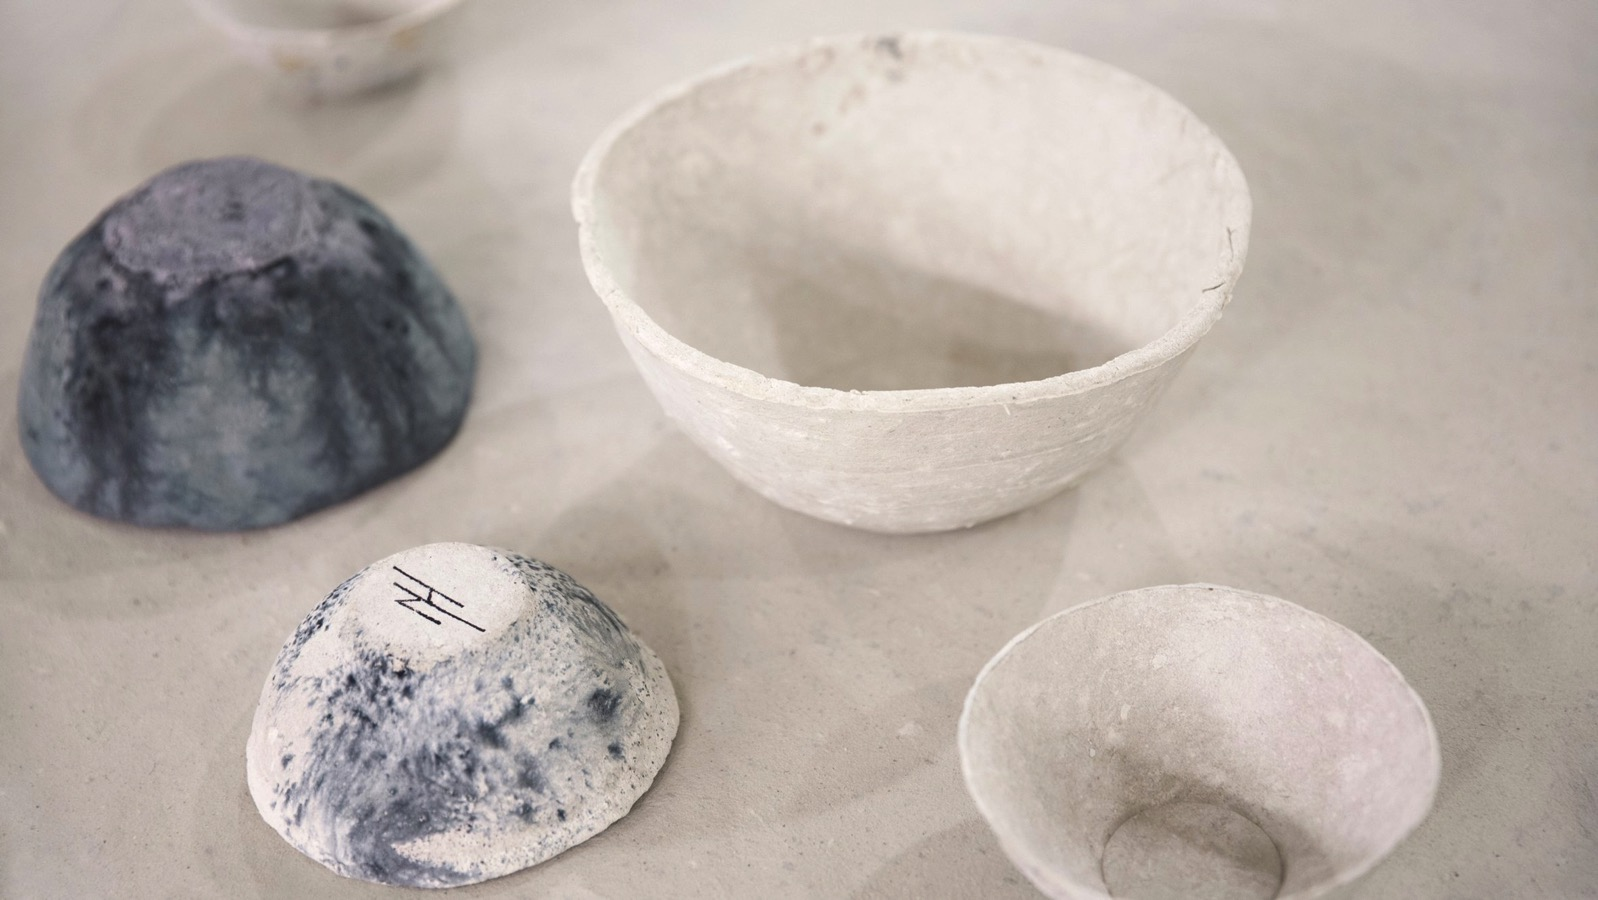 Sea me recycled toilet paper homeware corckery design studio nienke hoogvliet netherlands dezeen hero